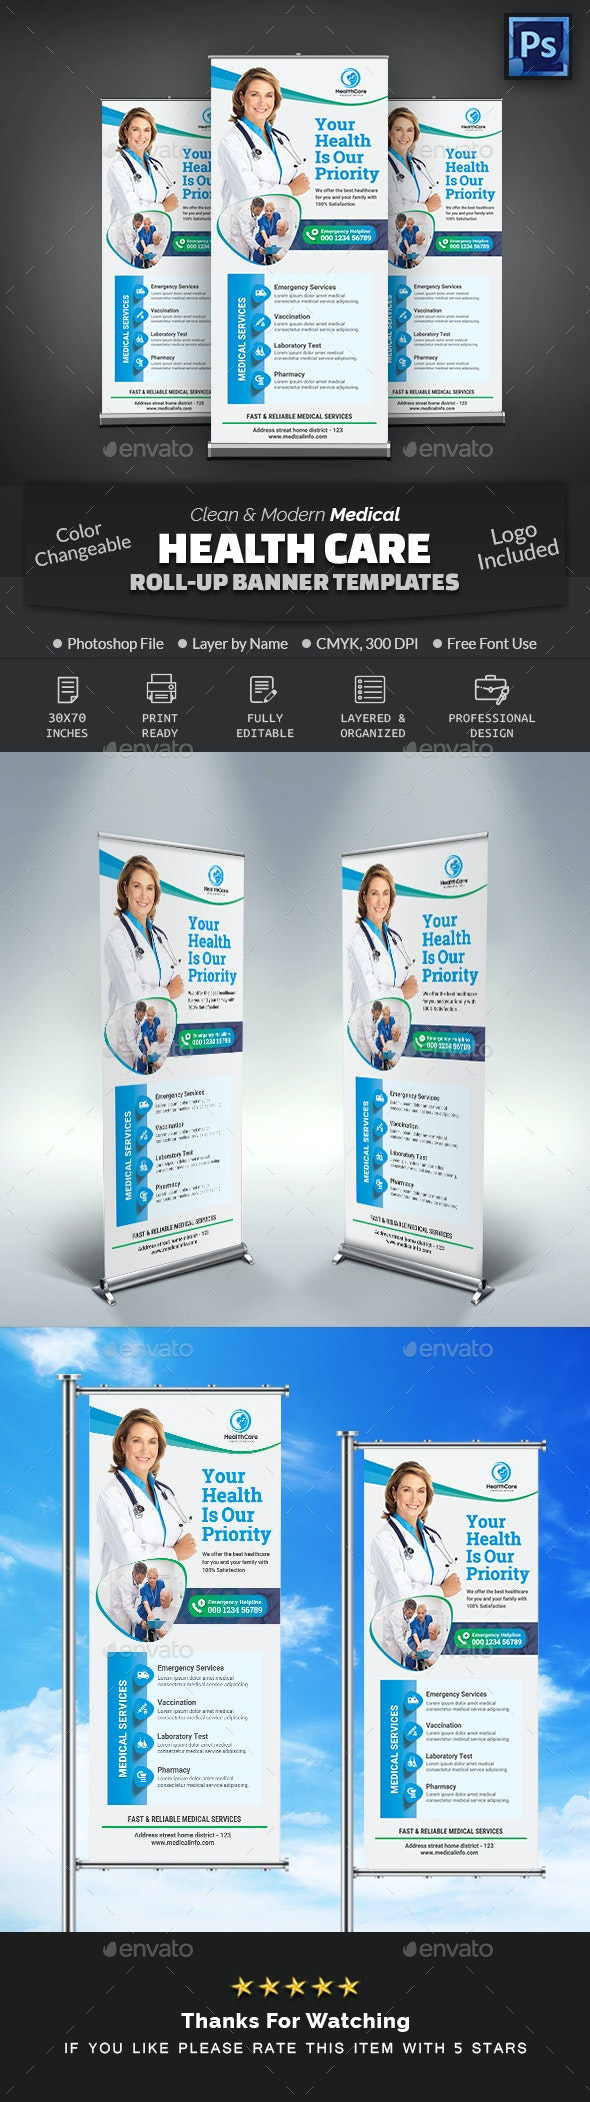 Medical Health Care Roll-Up Banner - Signage Print Templates